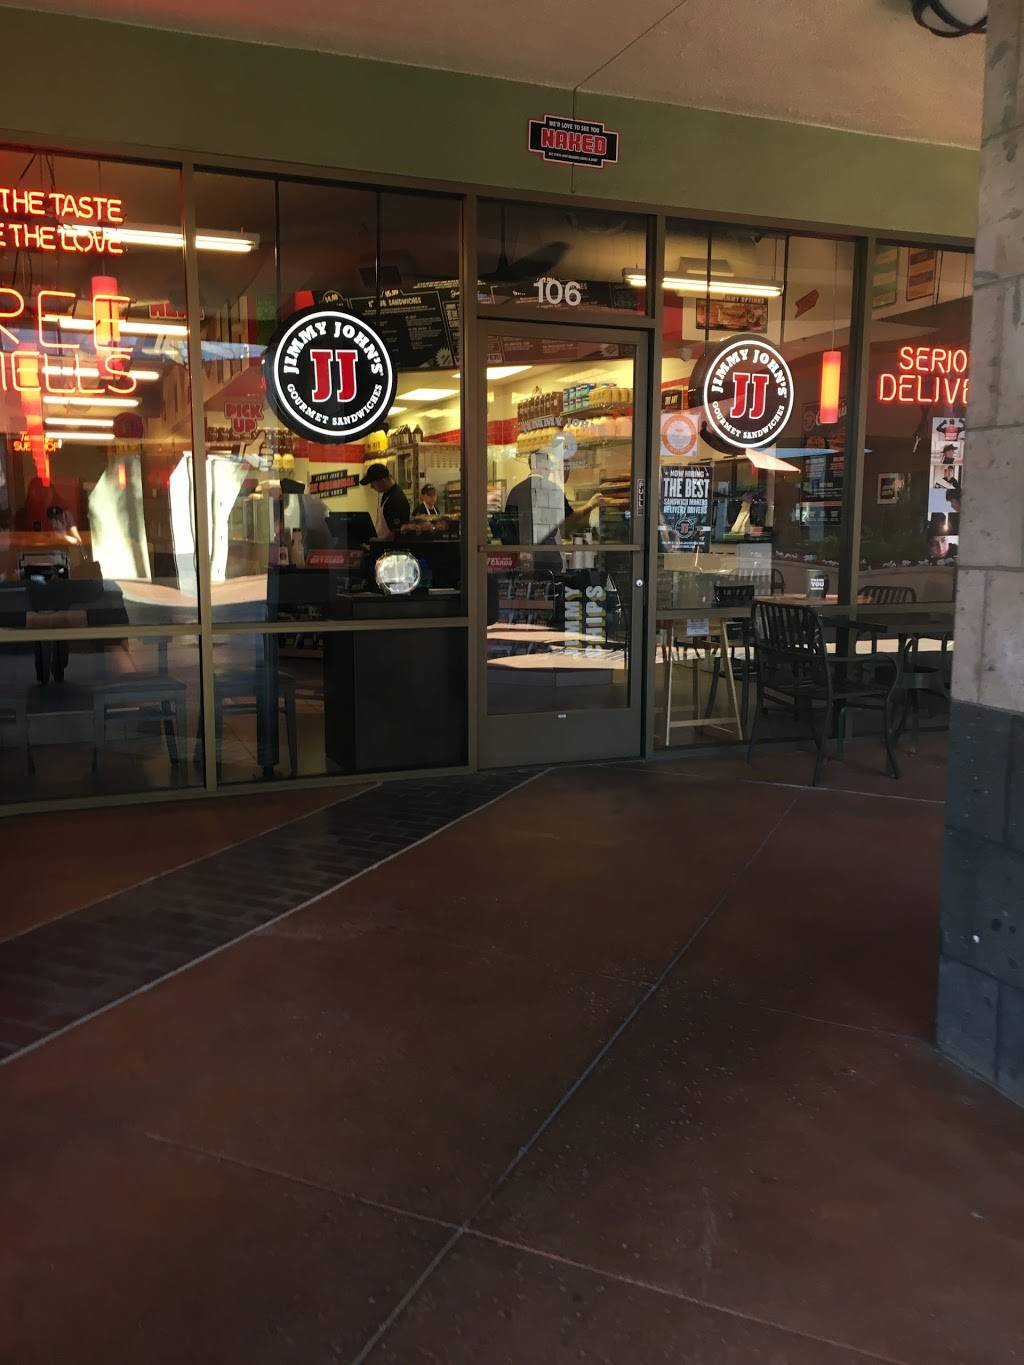 Jimmy Johns | meal delivery | 3930 S Bristol St Ste. 106, Santa Ana, CA 92704, USA | 7145404040 OR +1 714-540-4040